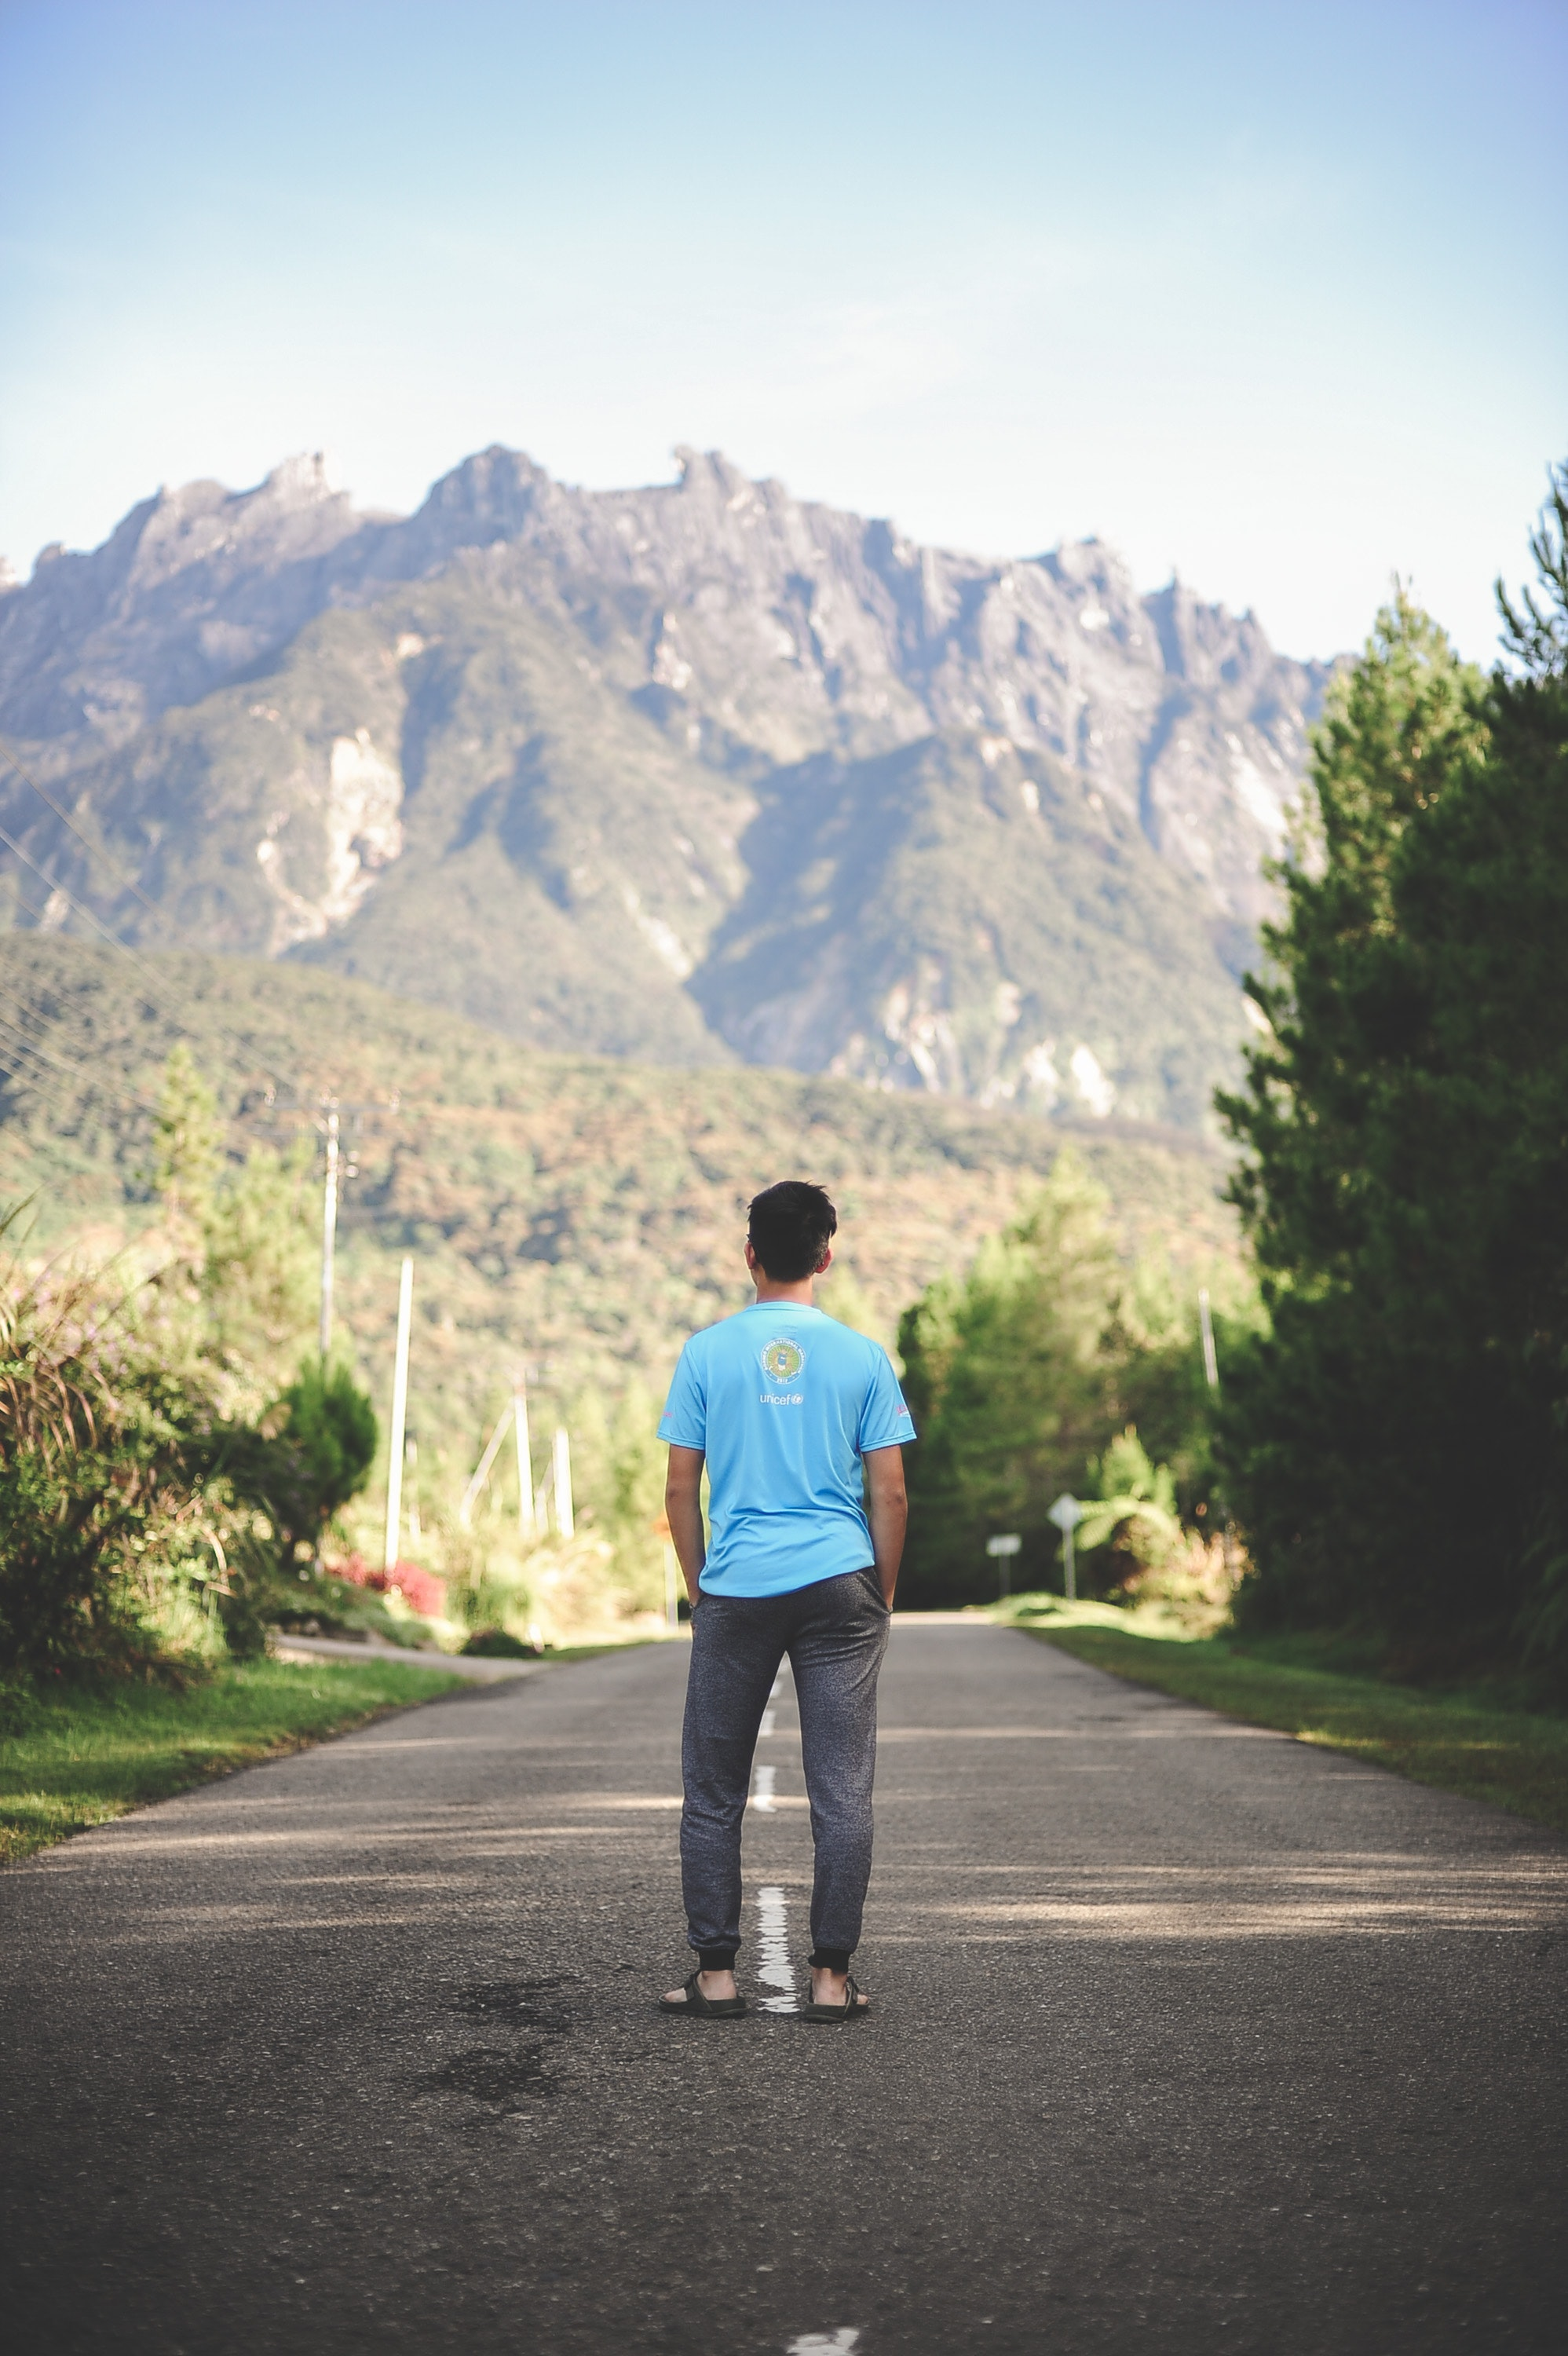 Man Standing on Road, Daylight, Environment, Grass, Landscape, HQ Photo